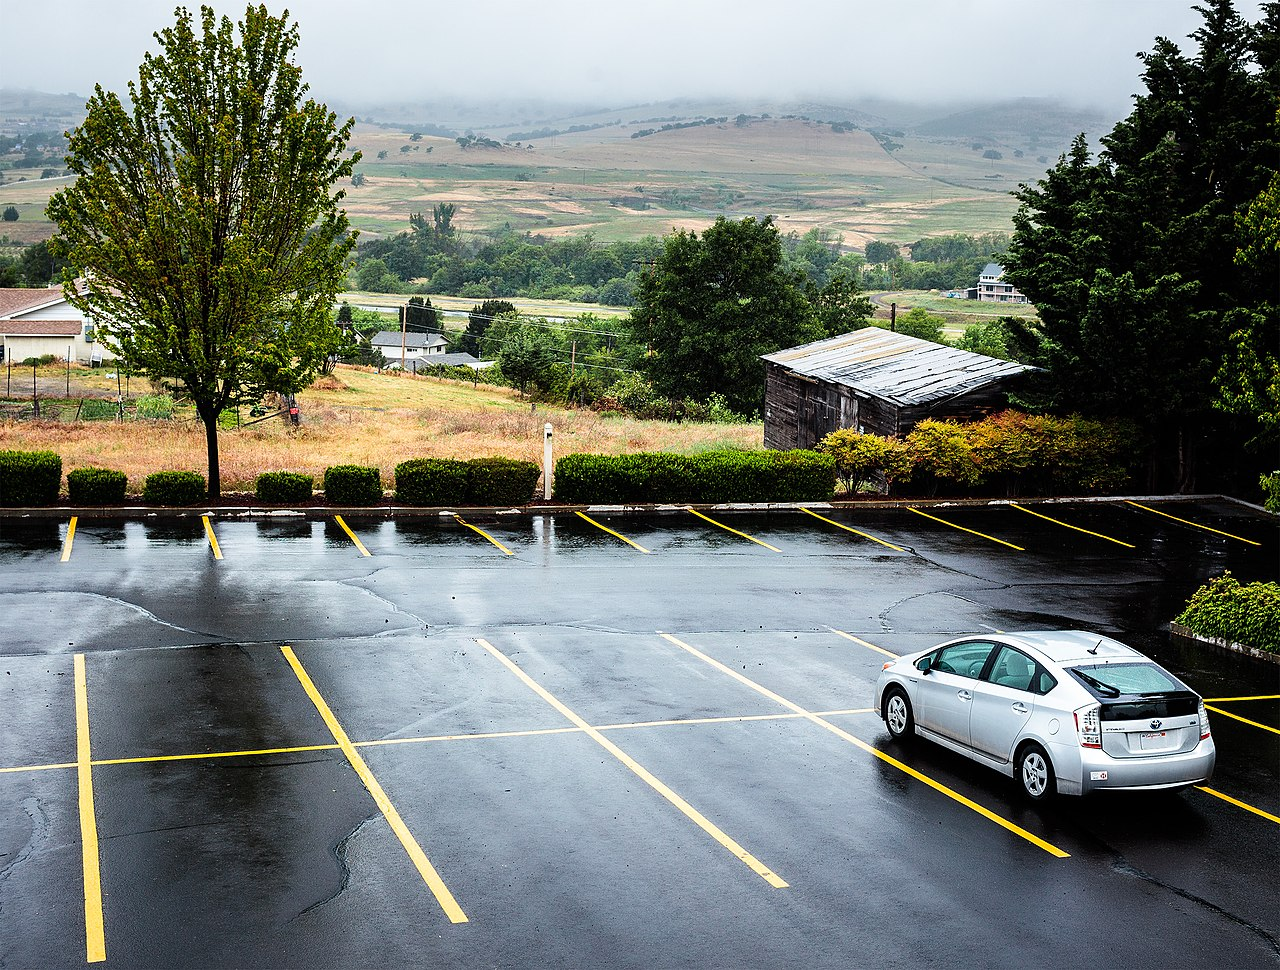 File:Wet Prius, alone in an empty parking lot (9927867963 ...